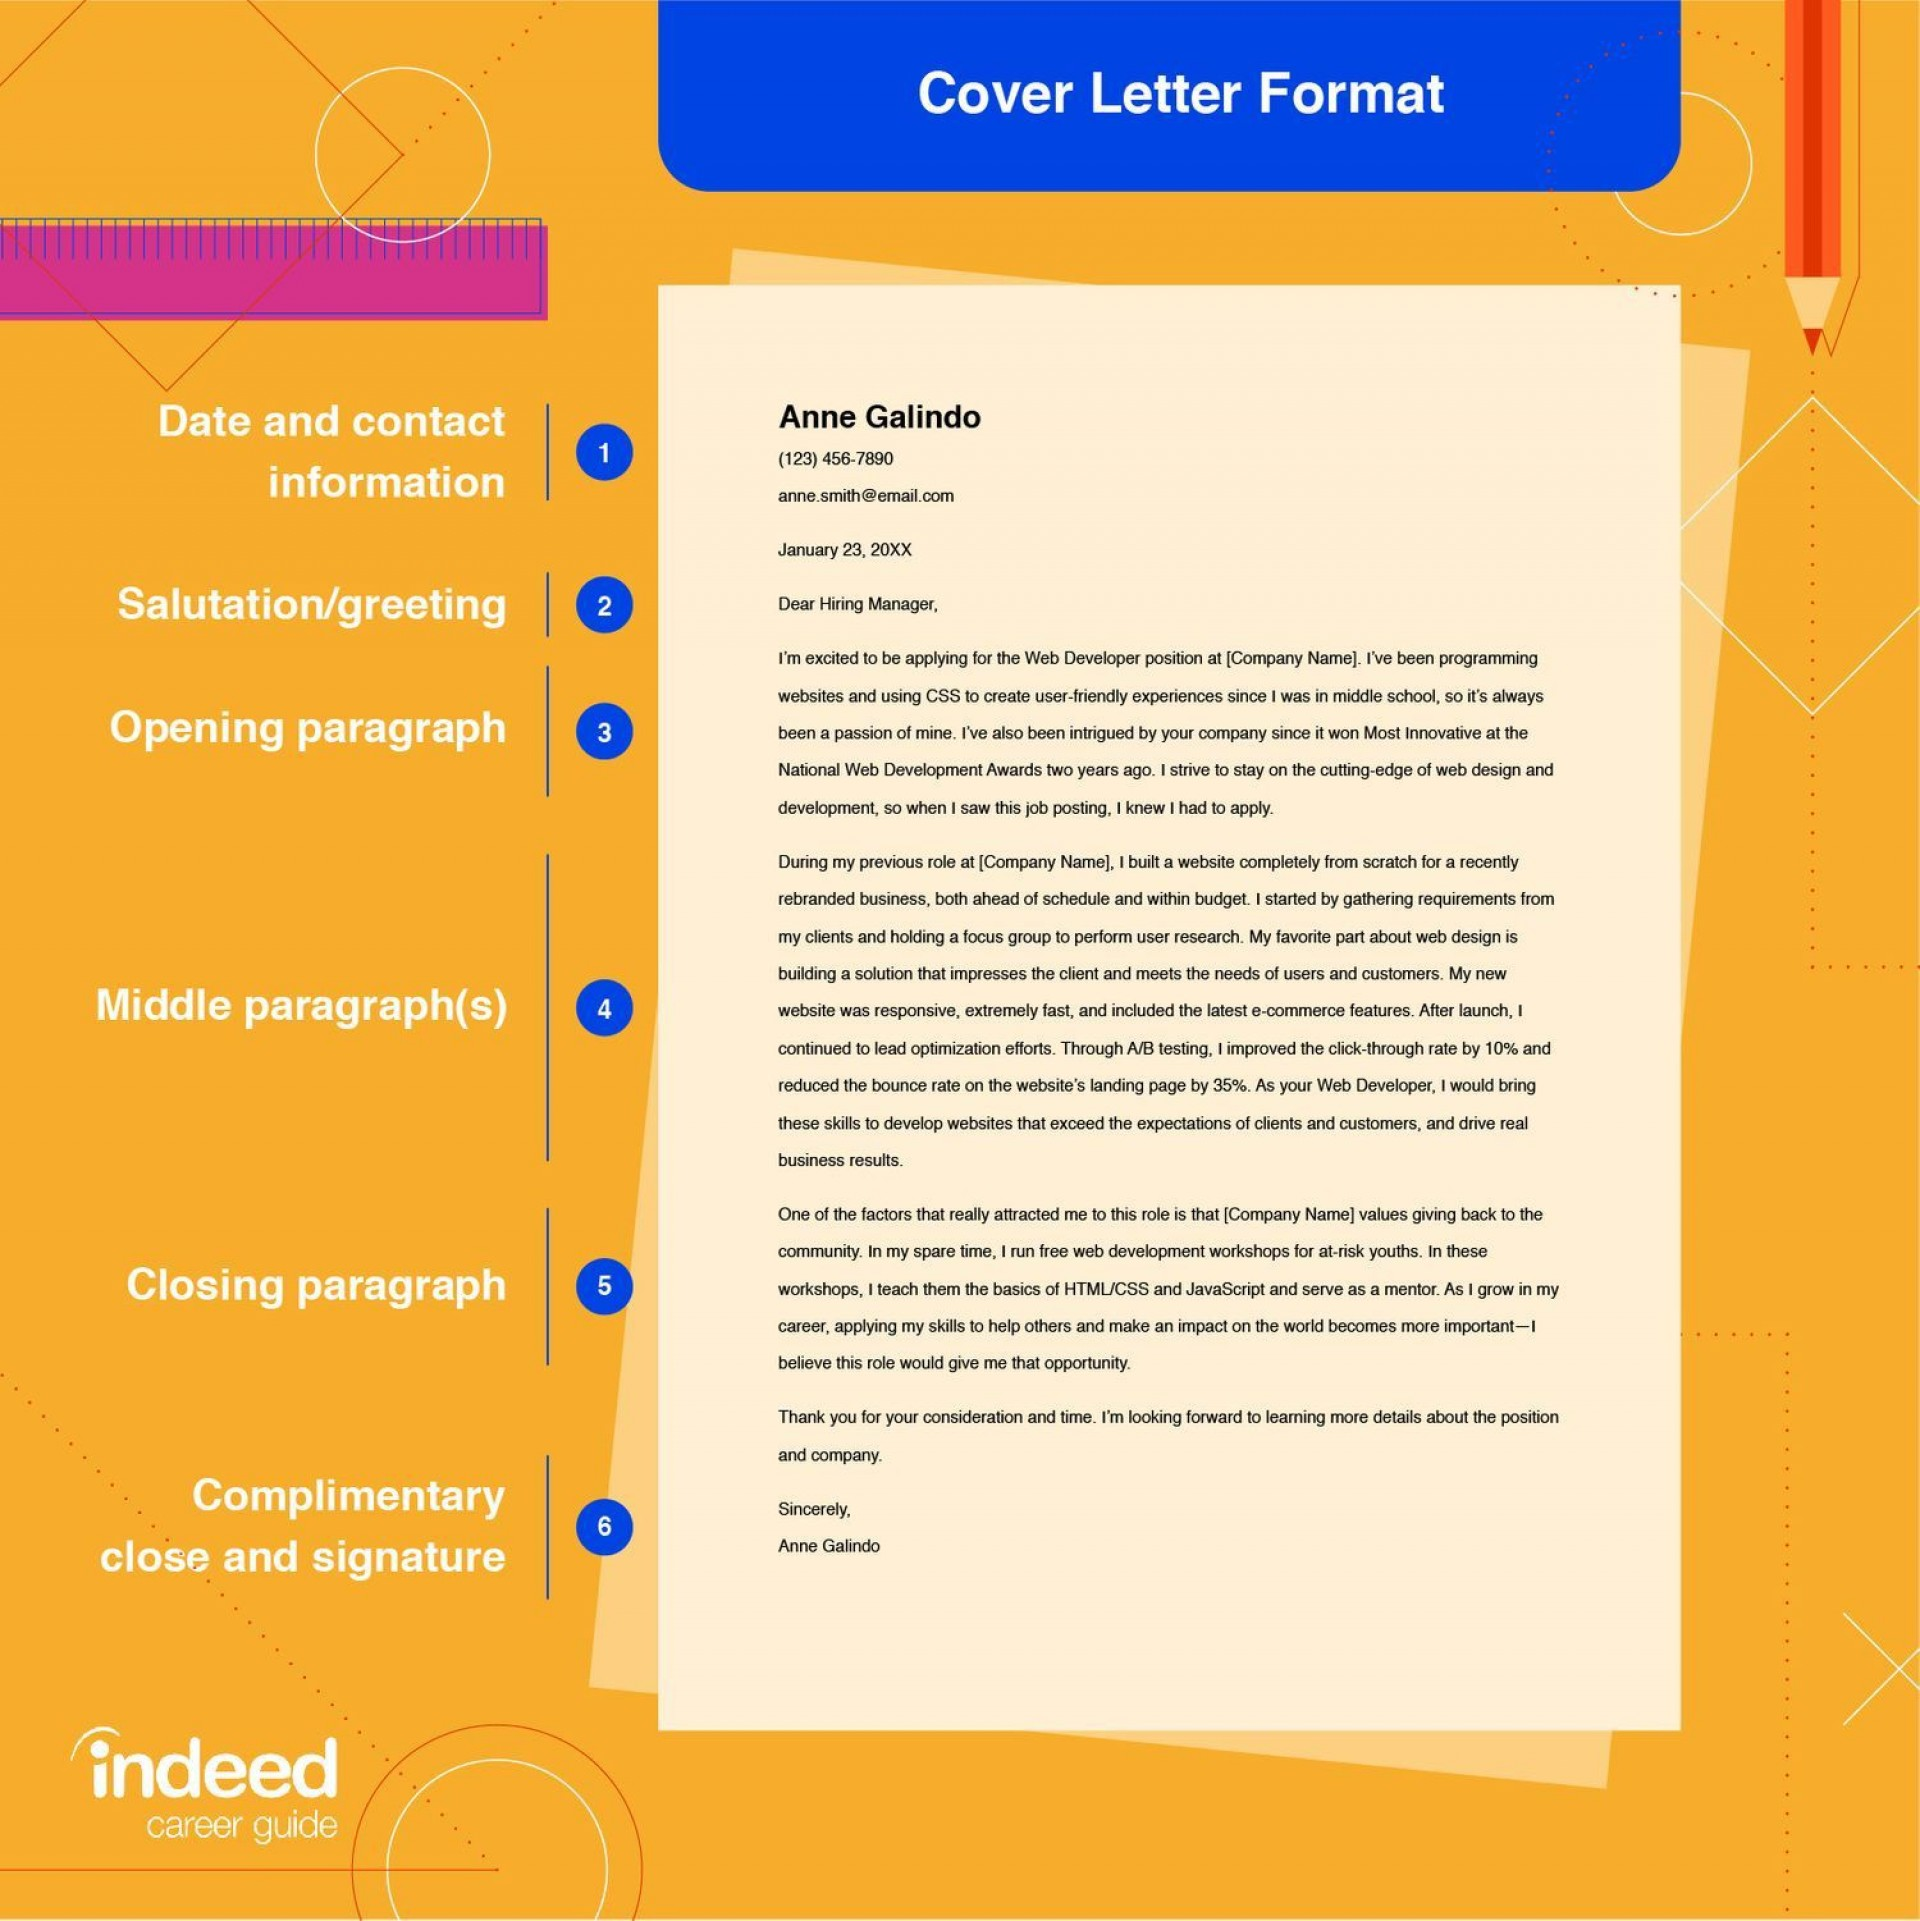 008 Unbelievable Cover Letter Template For Online Posting Idea 1920